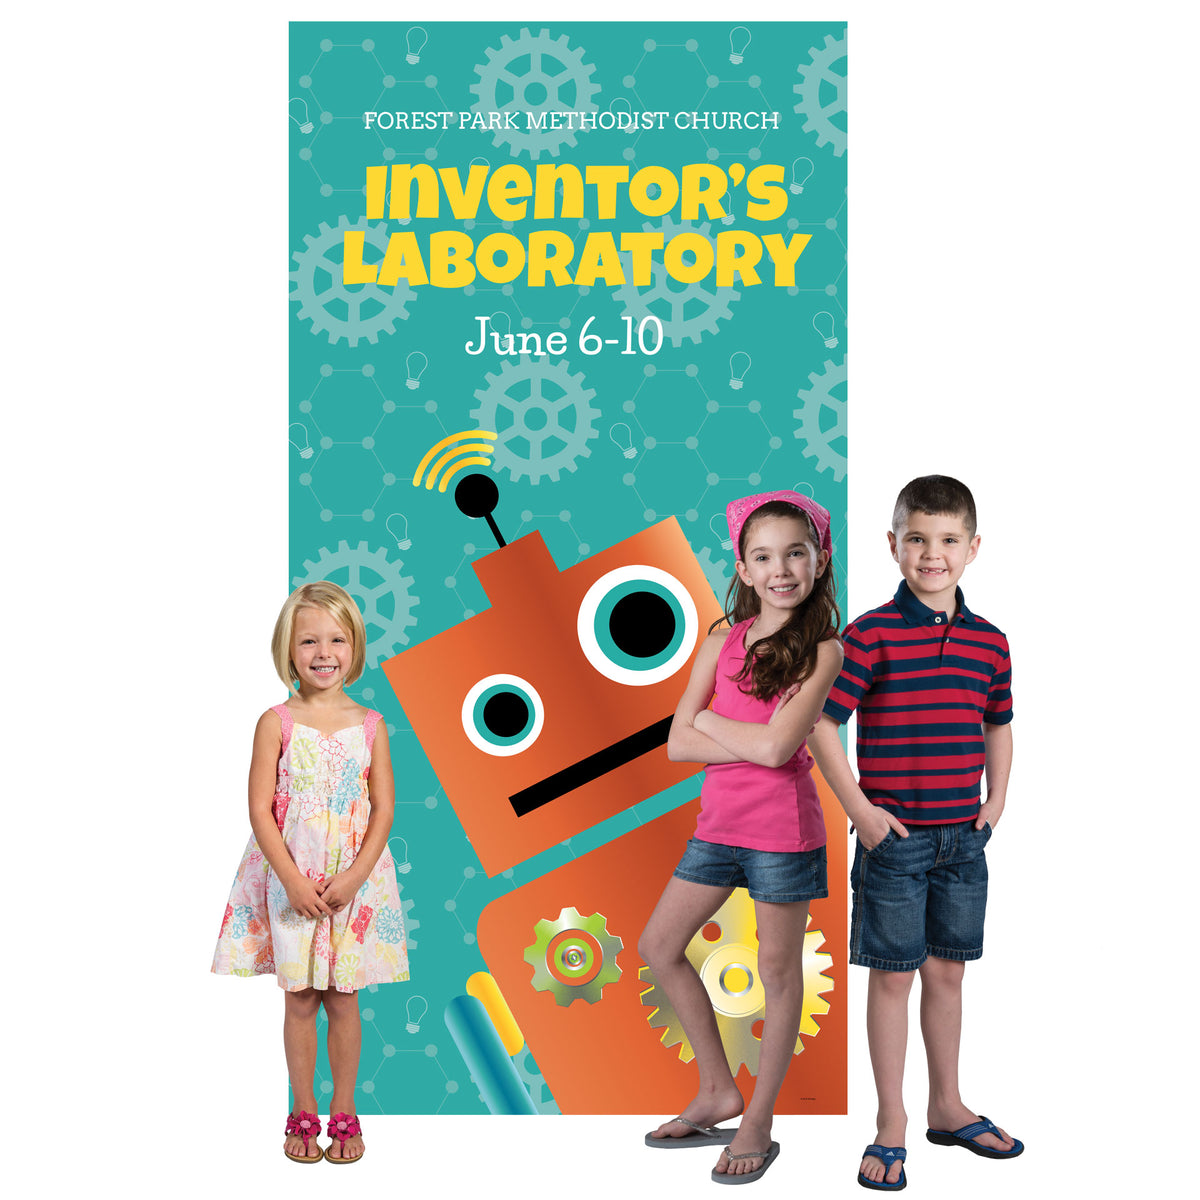 Inventor's Laboratory Personalized Photo Background